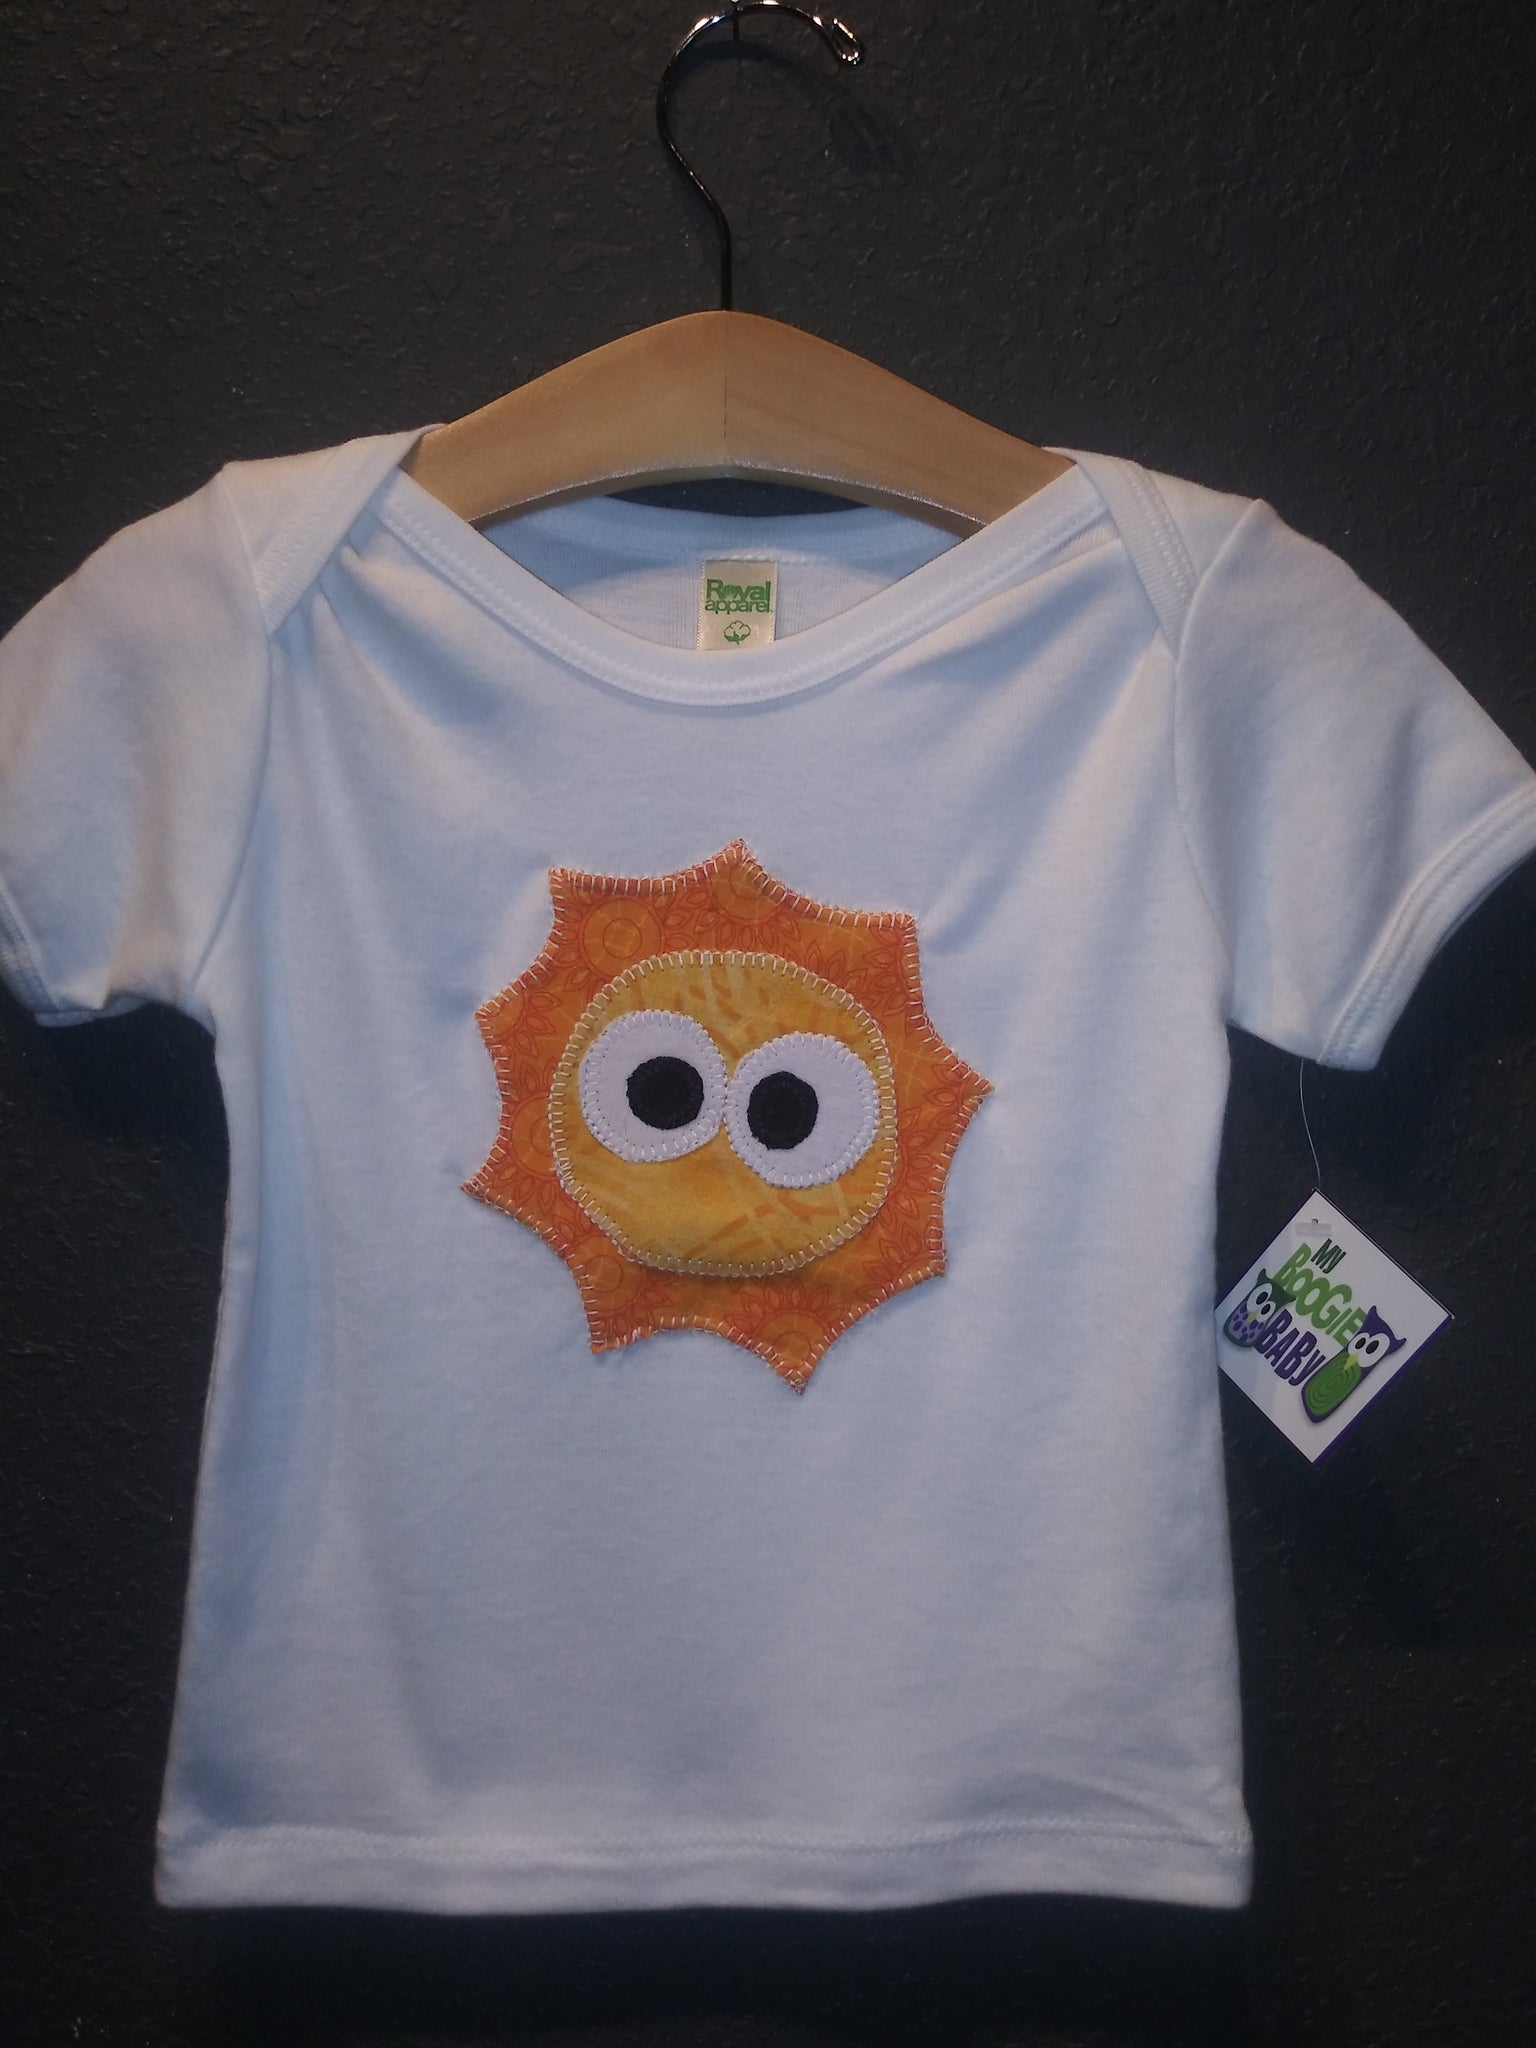 Sun Onesie - Crunch Natural Parenting is where to buy